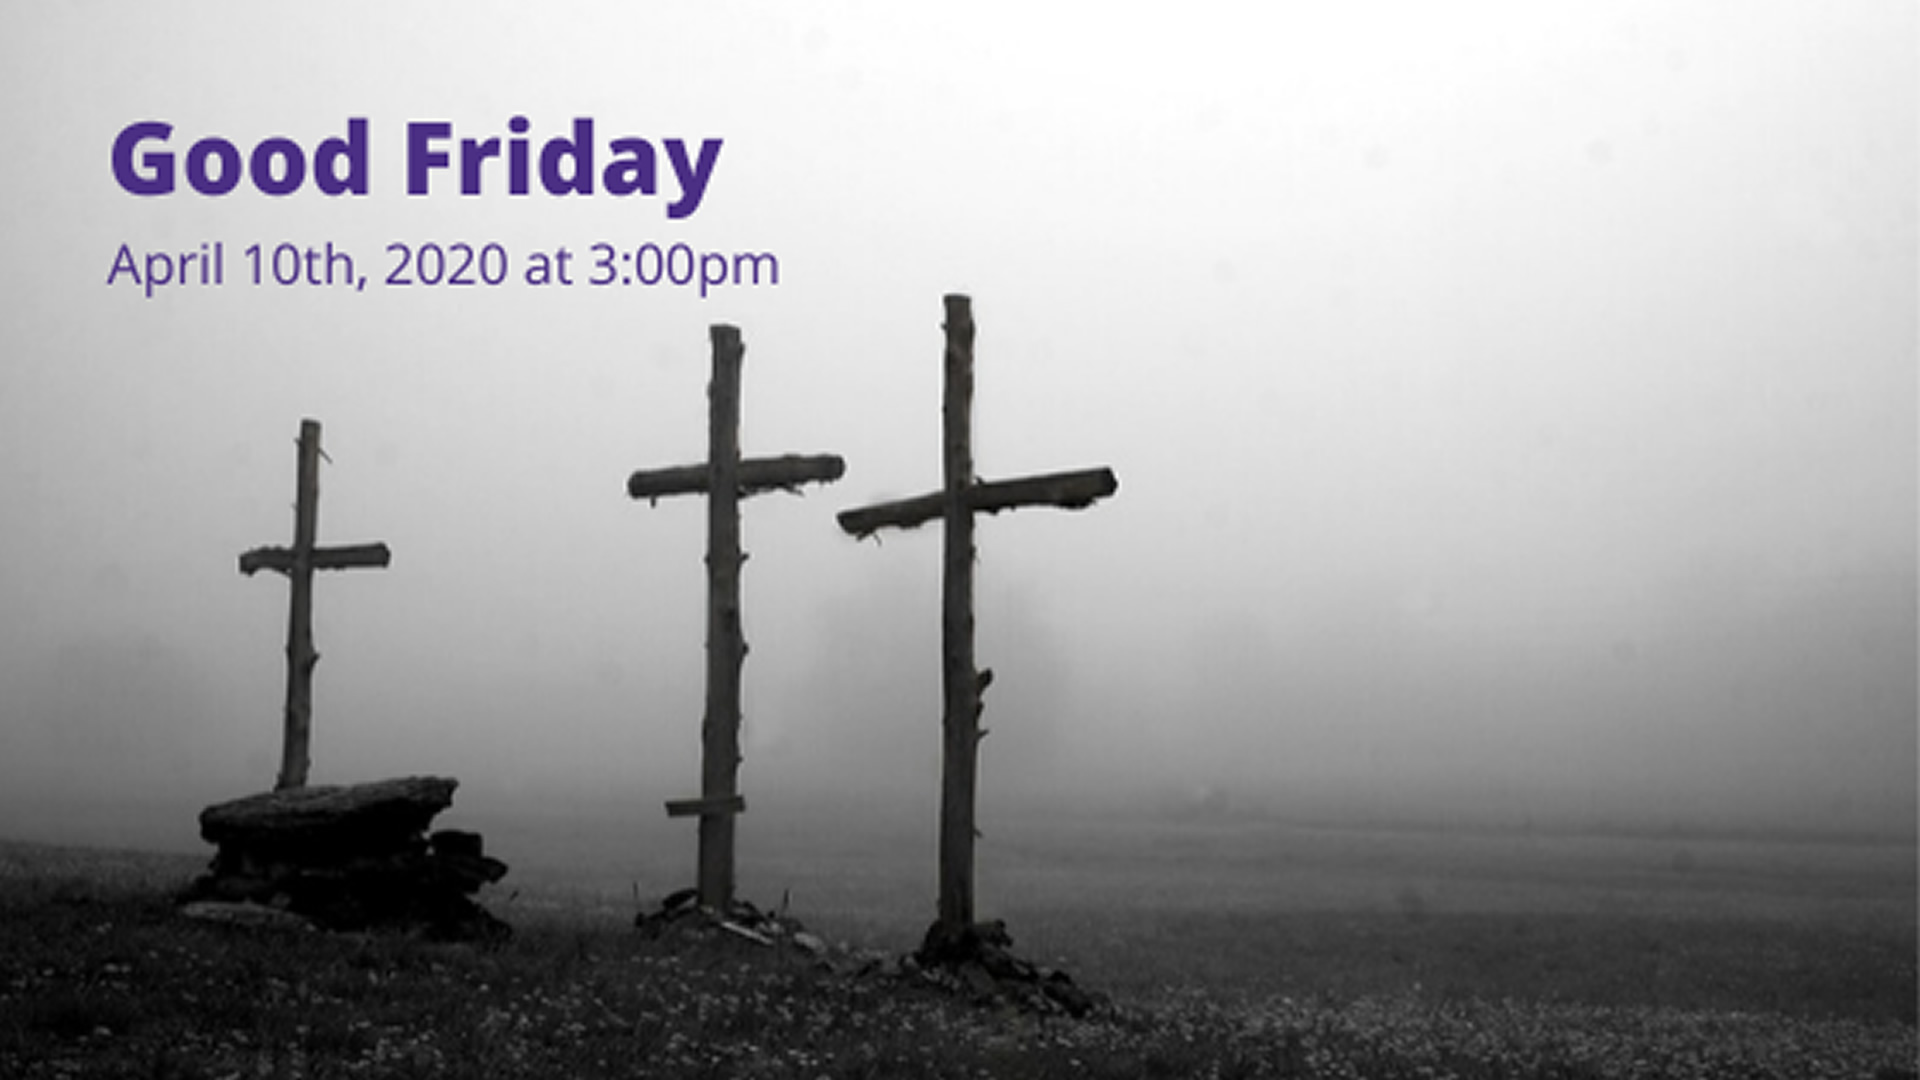 Good Friday - Live-streamed from the Catholic Diocese of Cleveland - Friday, April 10th at 3:00pm